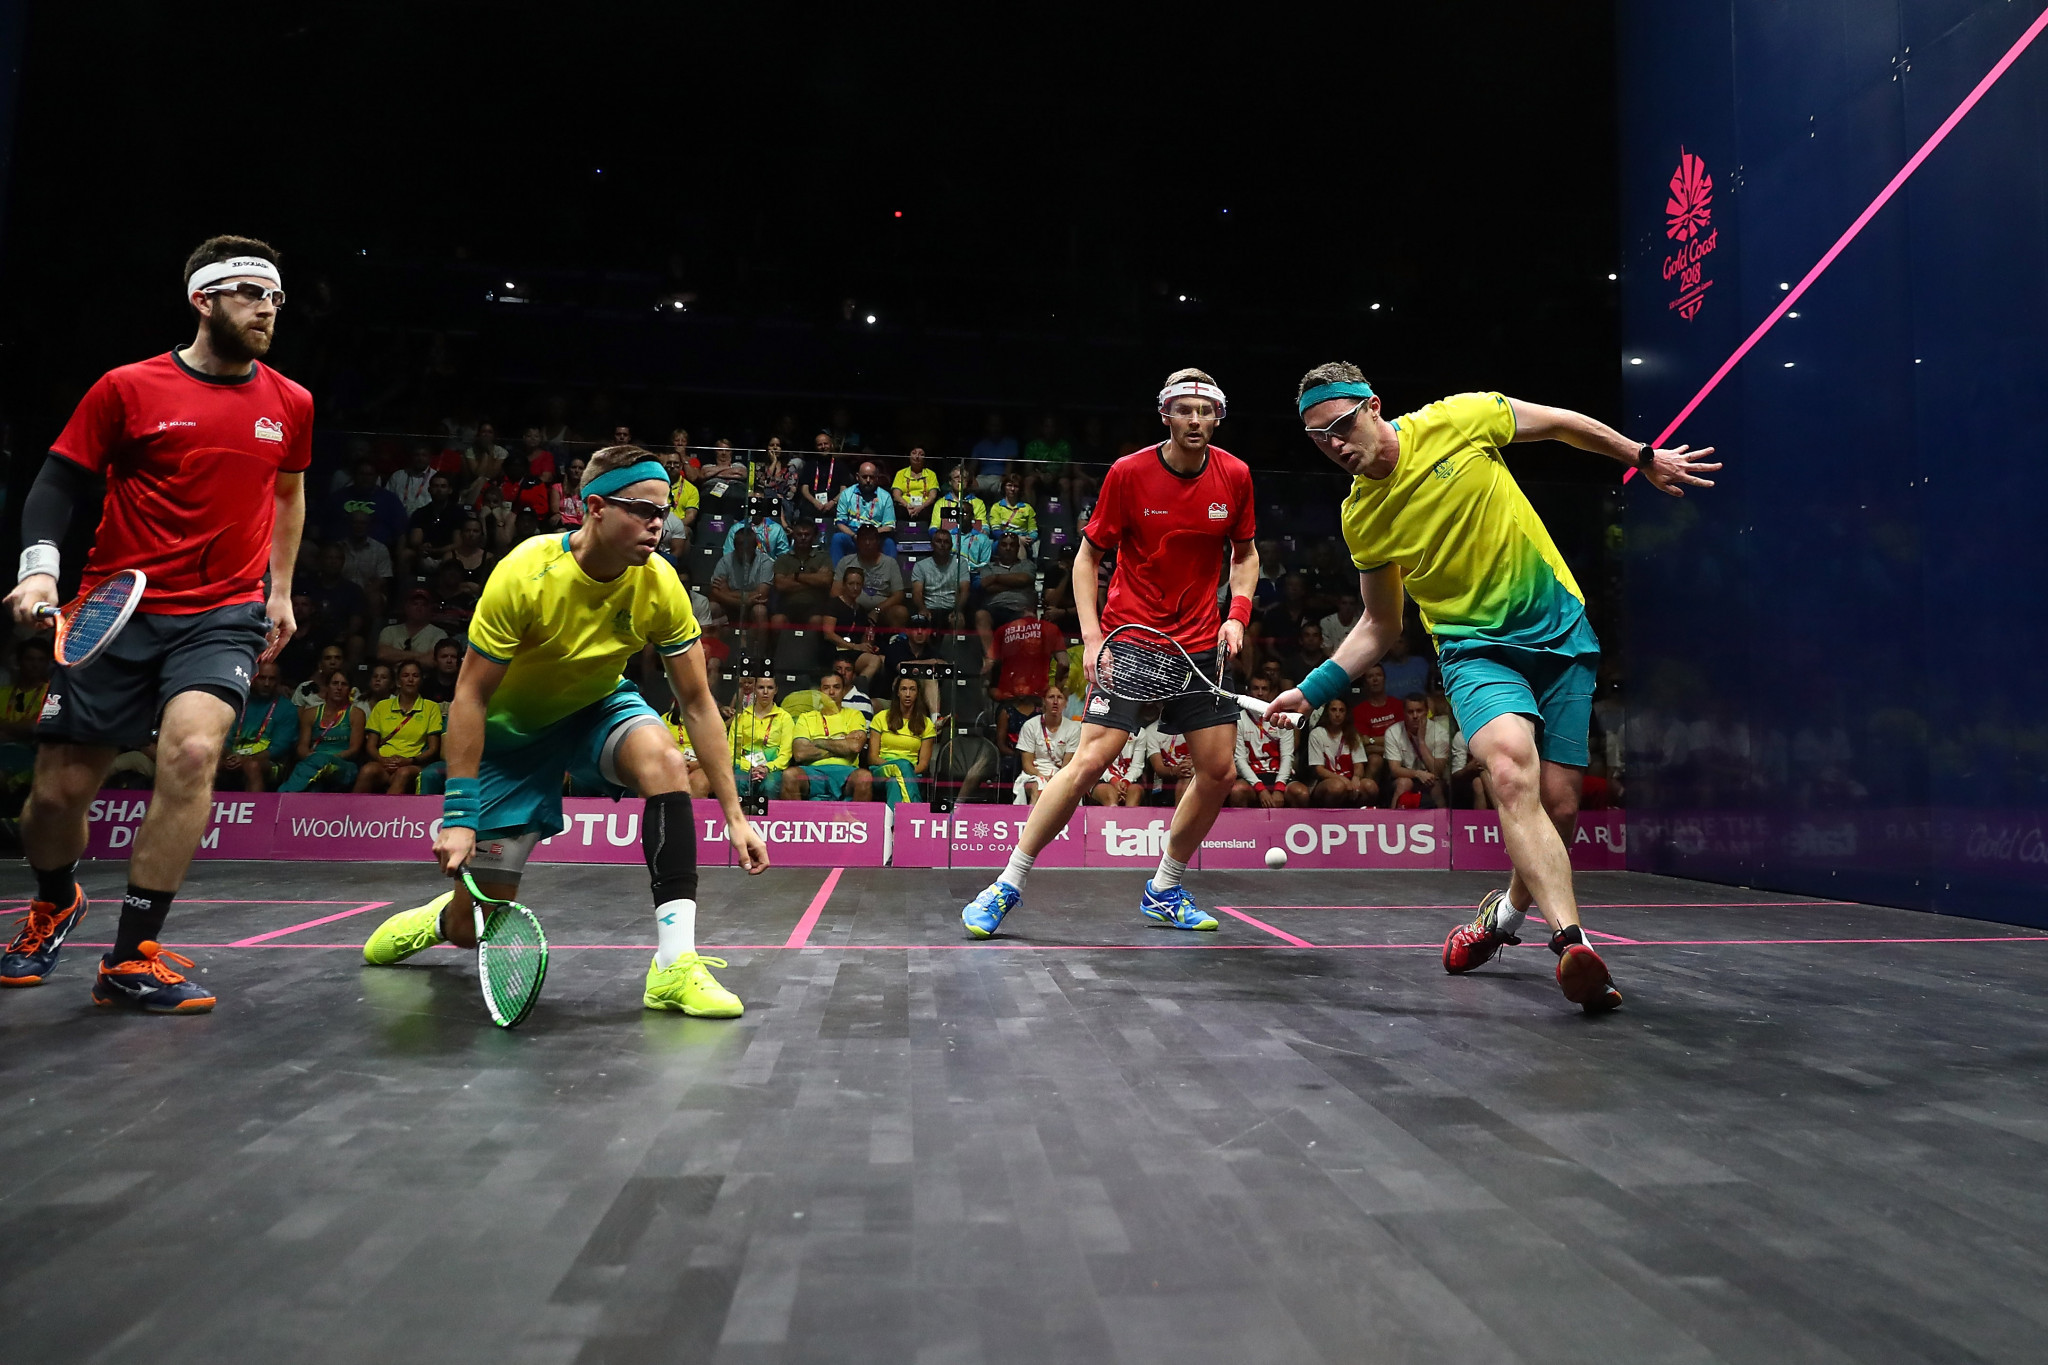 The ESF state they will seek to promote support for squash's bid for Olympic inclusion ©Getty Images